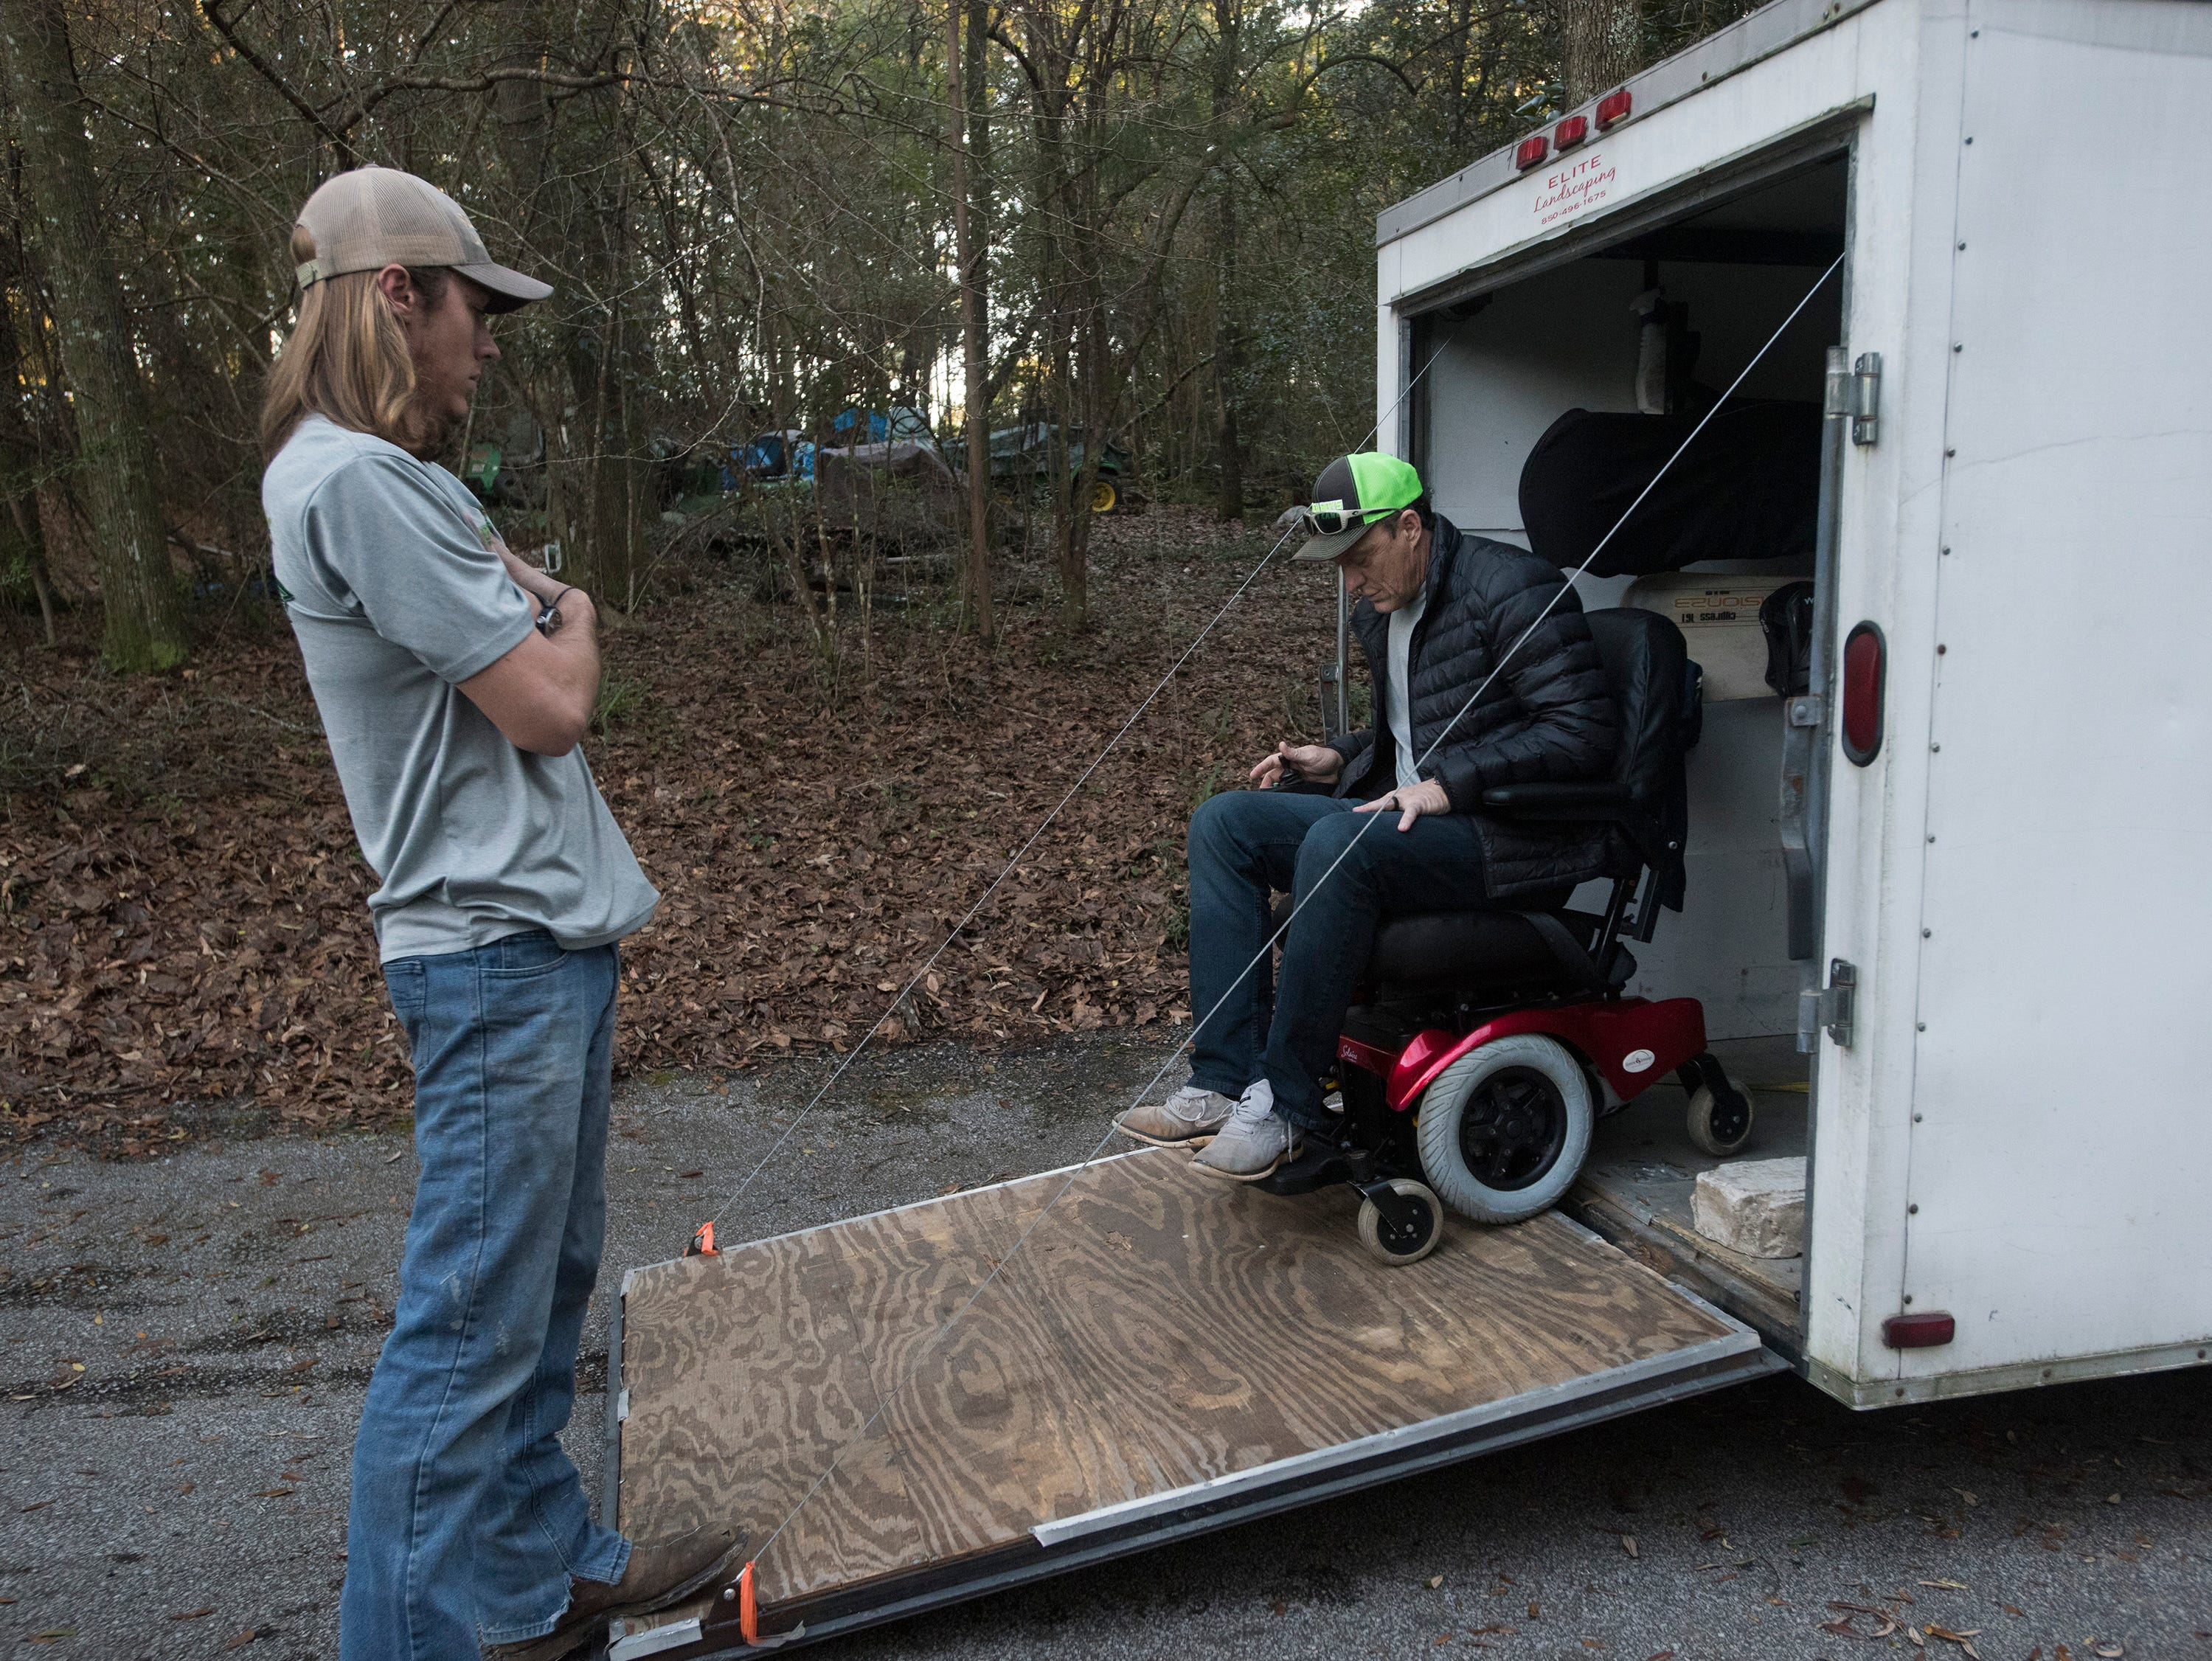 Rick Beech, the owner of Beech Boys Lawn Care, unloads a newly refurbished motorized chair outside the East Milton home of  Phyllis, and Jim Blazier, on Friday, Jan. 4, 2019, while his son, Cole looks on.